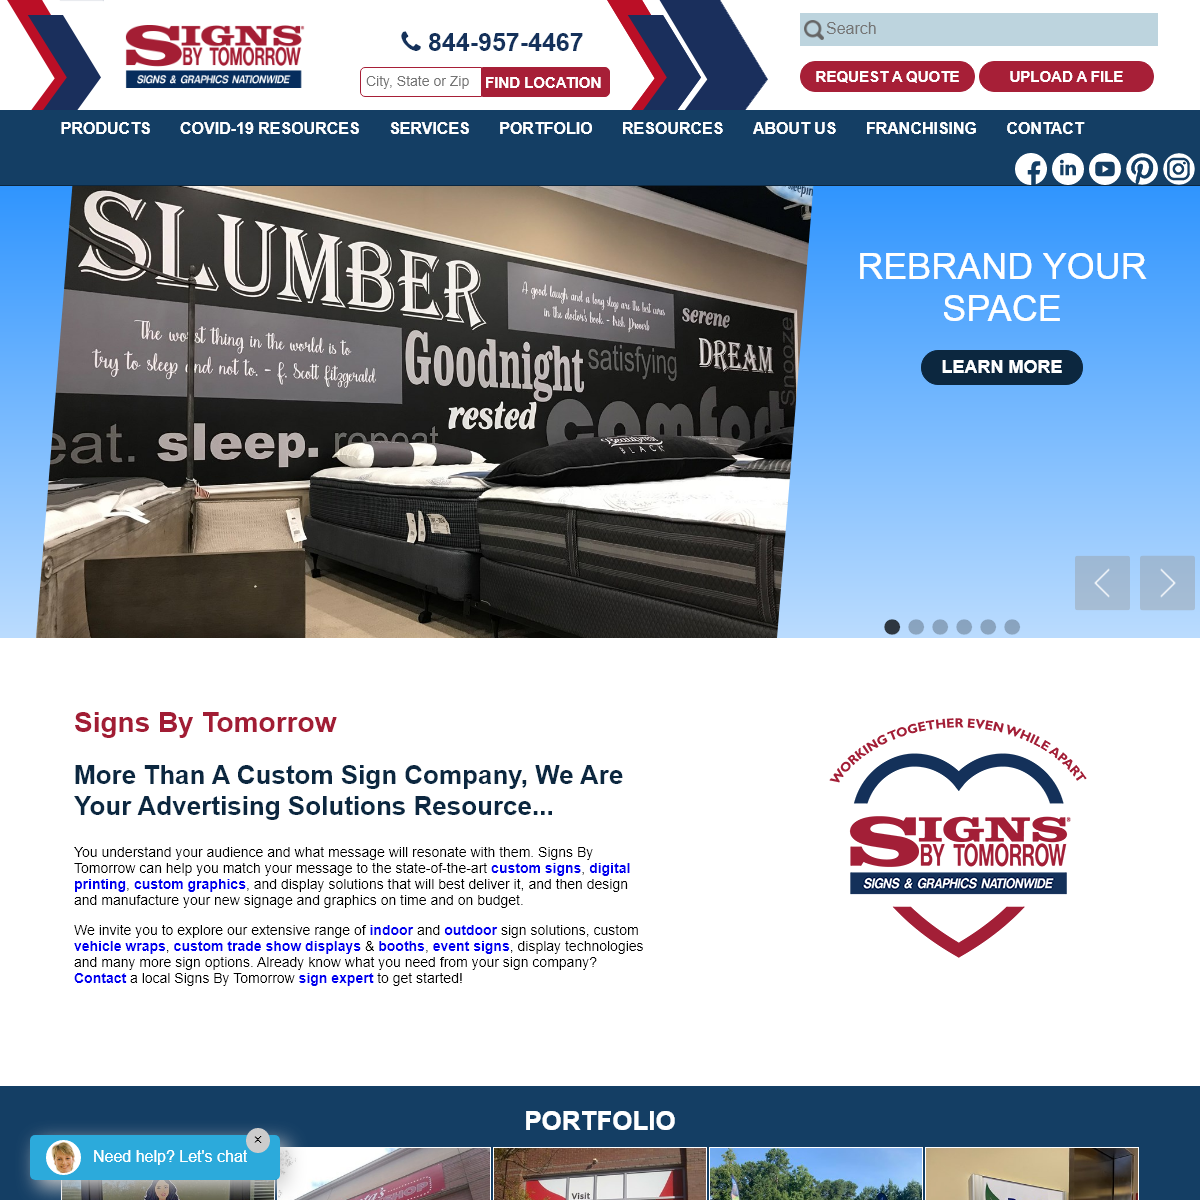 Custom Signs, Digital Printing, Graphics, Signage, Displays and More - Signs By Tomorrow - Sign Company, Custom Signage